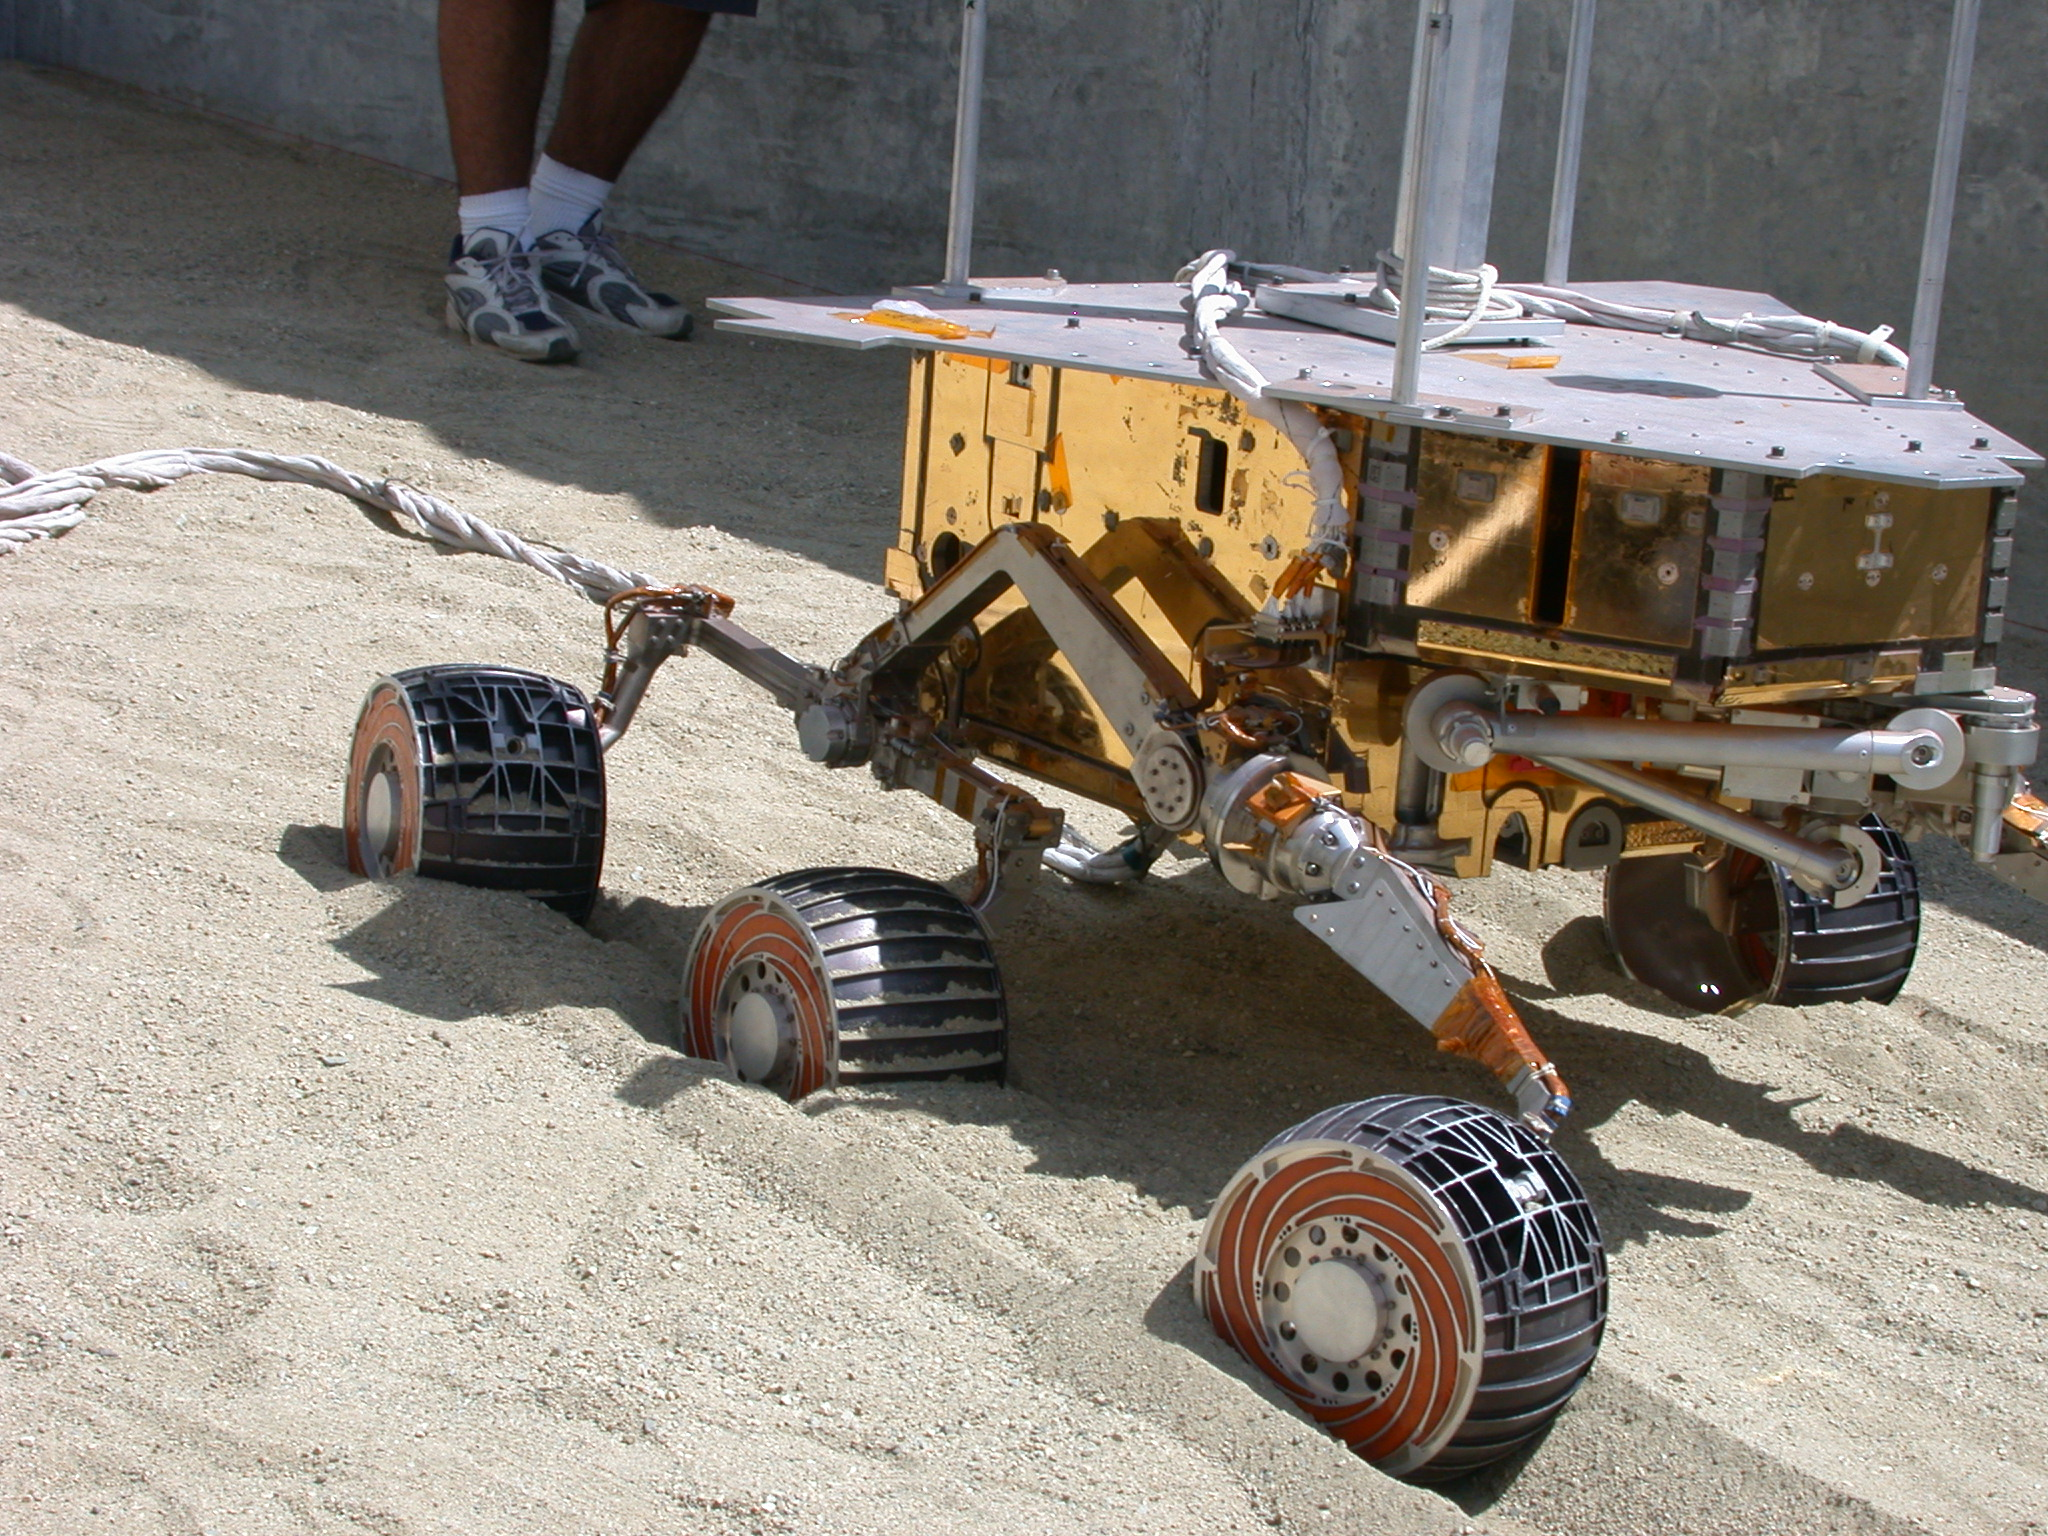 mars rover mission nasa - photo #20